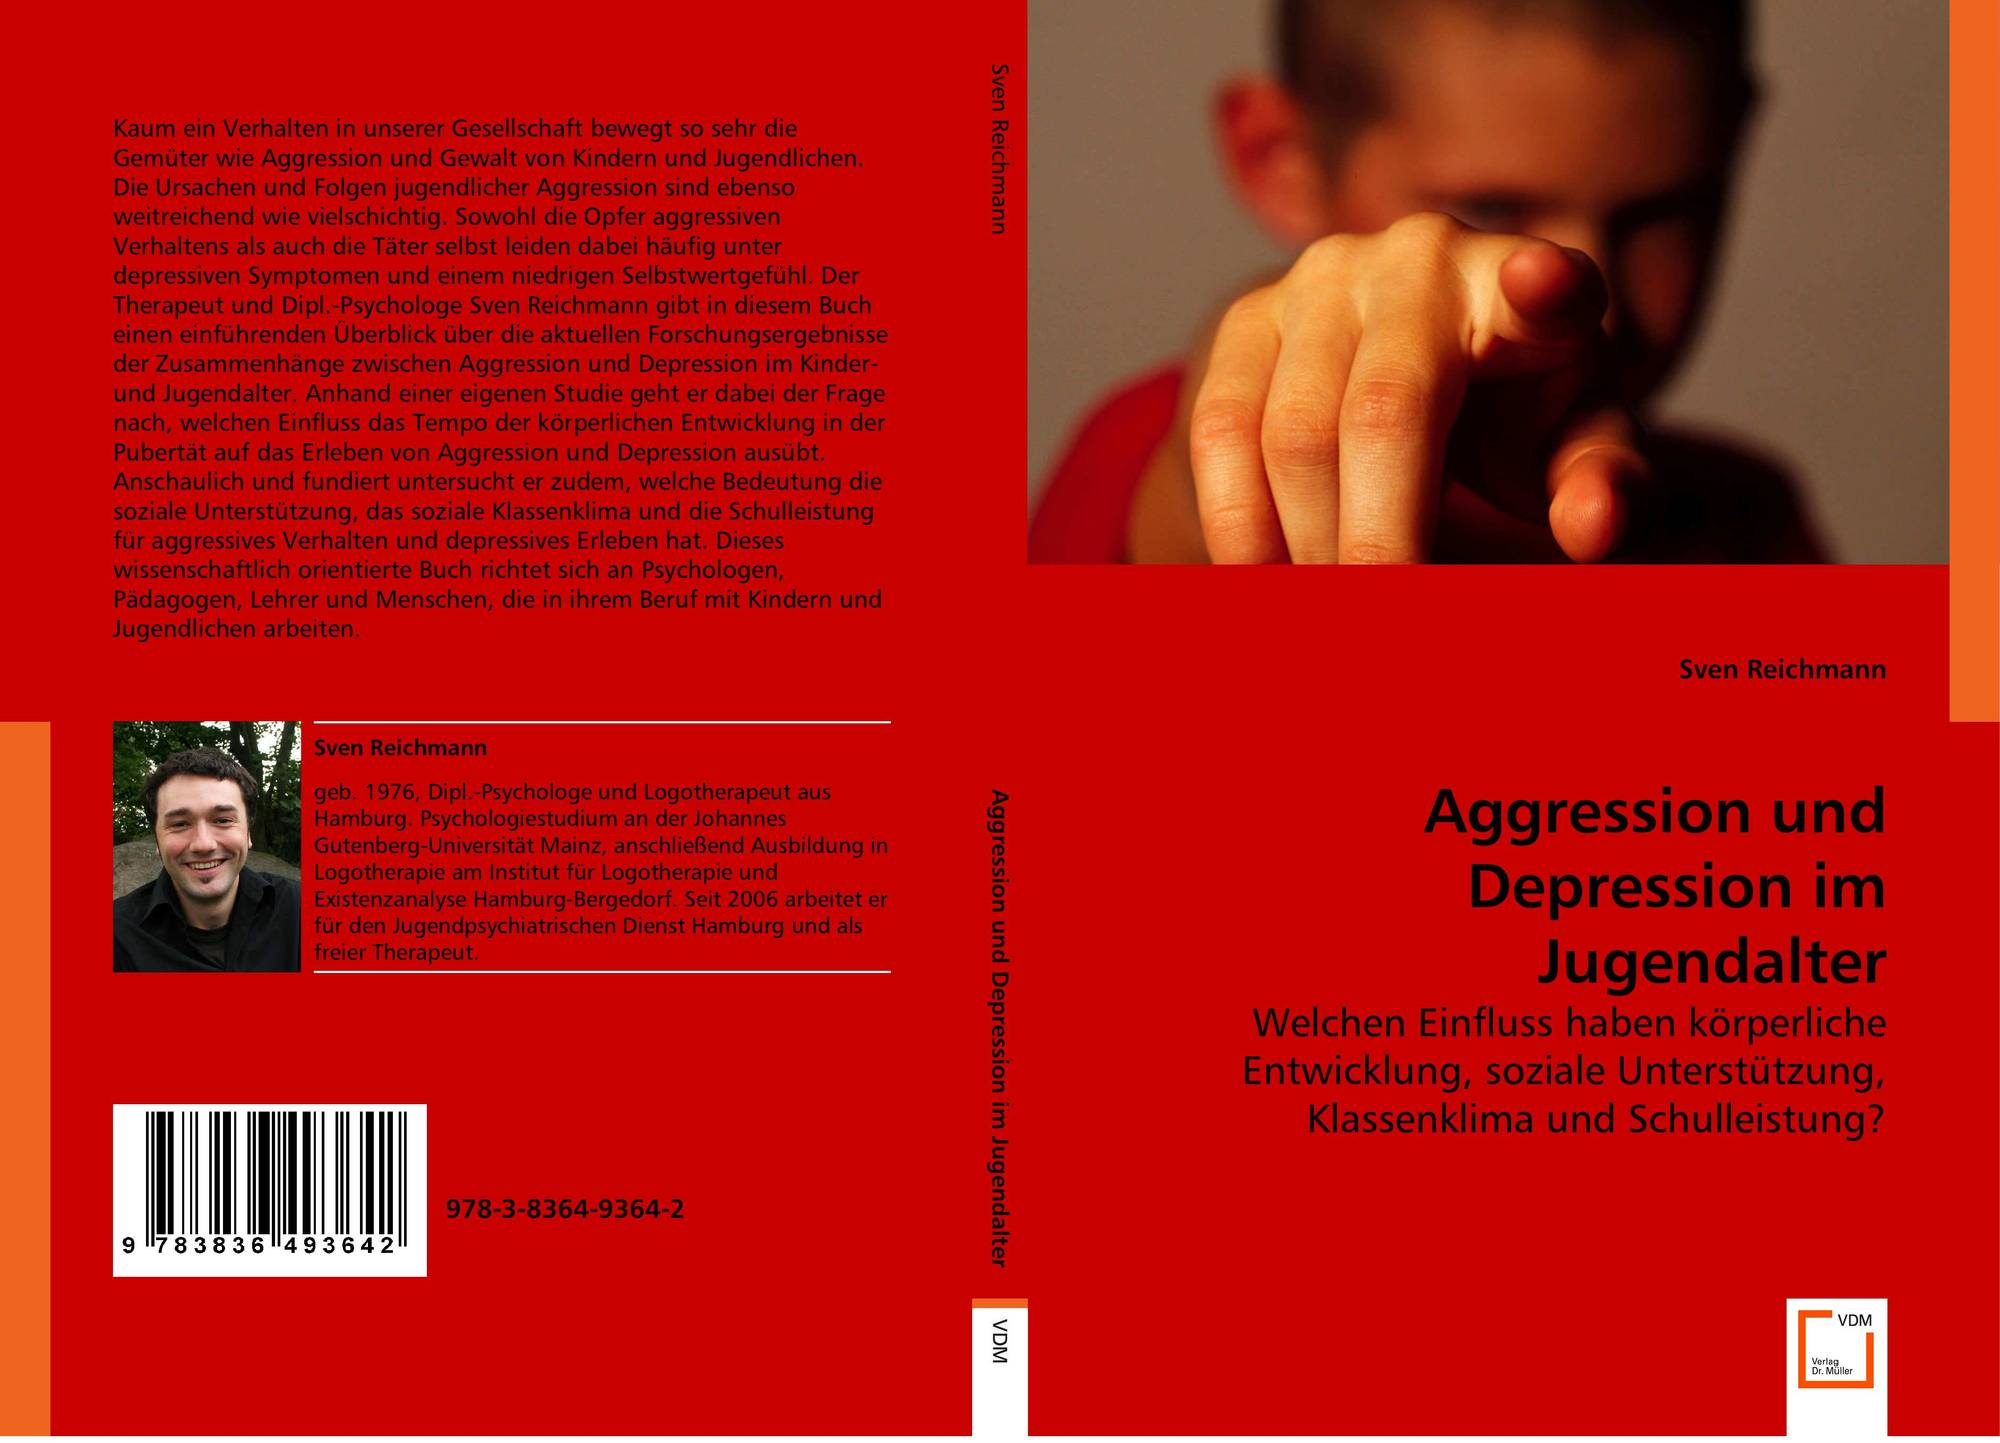 hemispheric asymmetry in depression an overview Electroencephalographic and perceptual asymmetry differences between the relationship between hemispheric asymmetry and treatment depression.